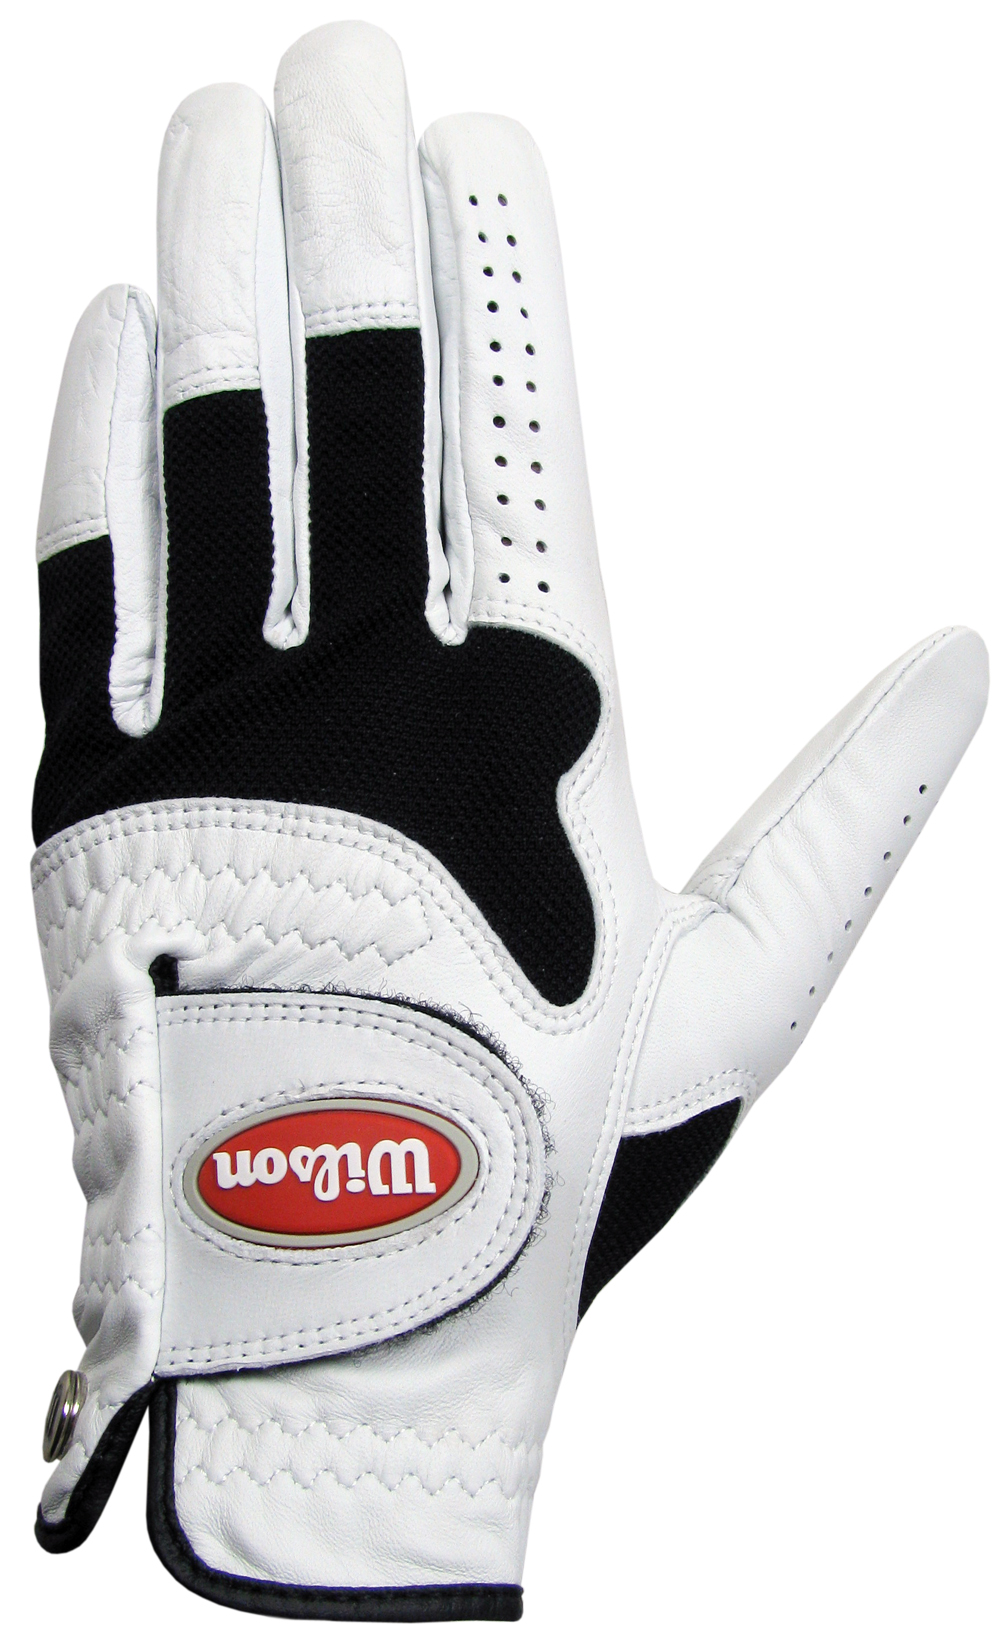 Wilson Golf Gloves Mens - Advantage, ProStaff, Rain Fit, Winter Grip Black